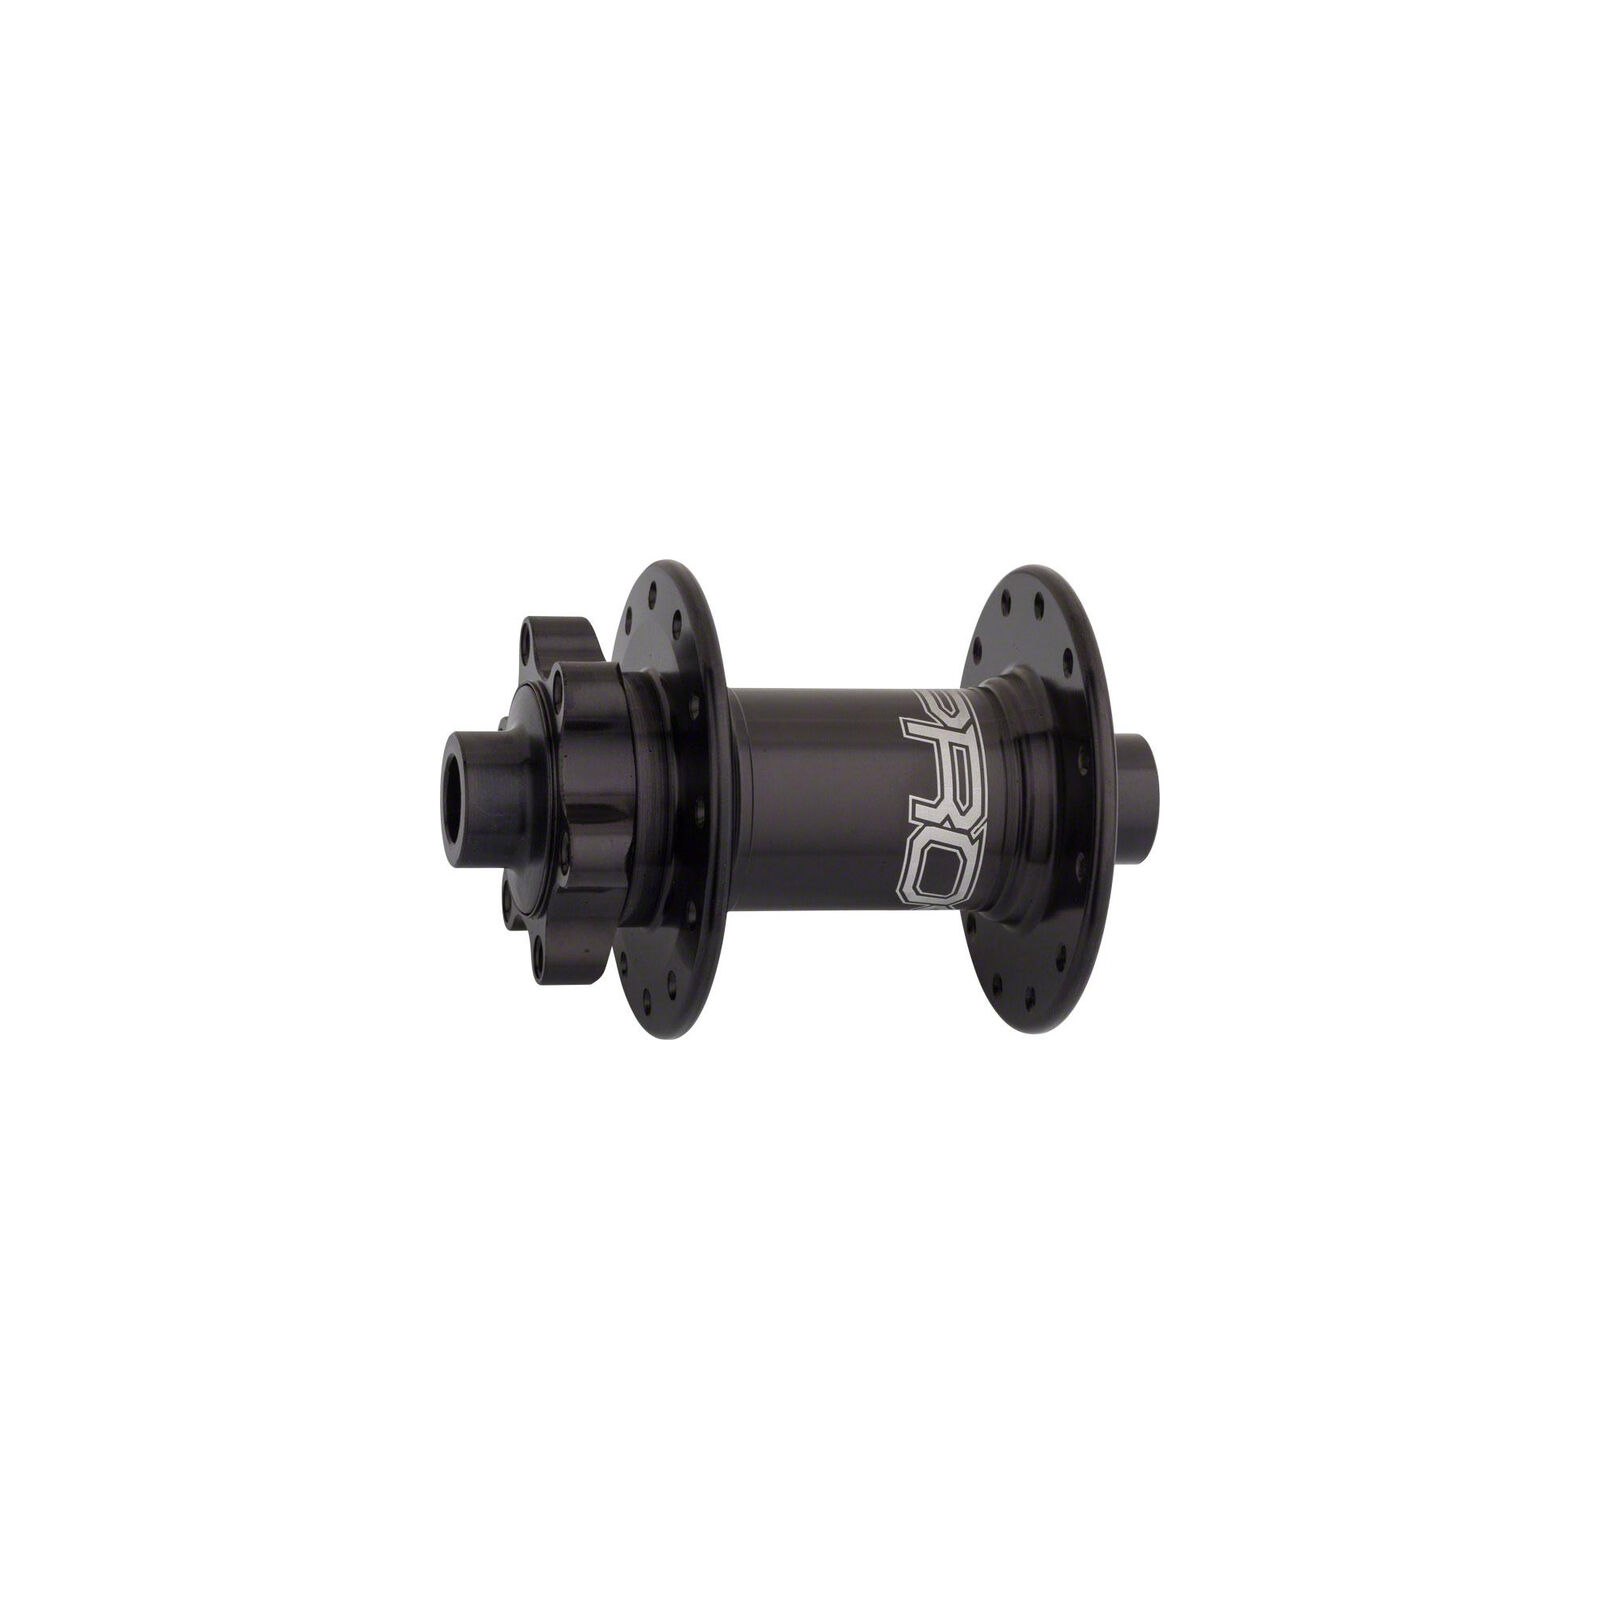 Concentrador de disco delantero Hope Pro 4 Eje 12mm 24h Negro